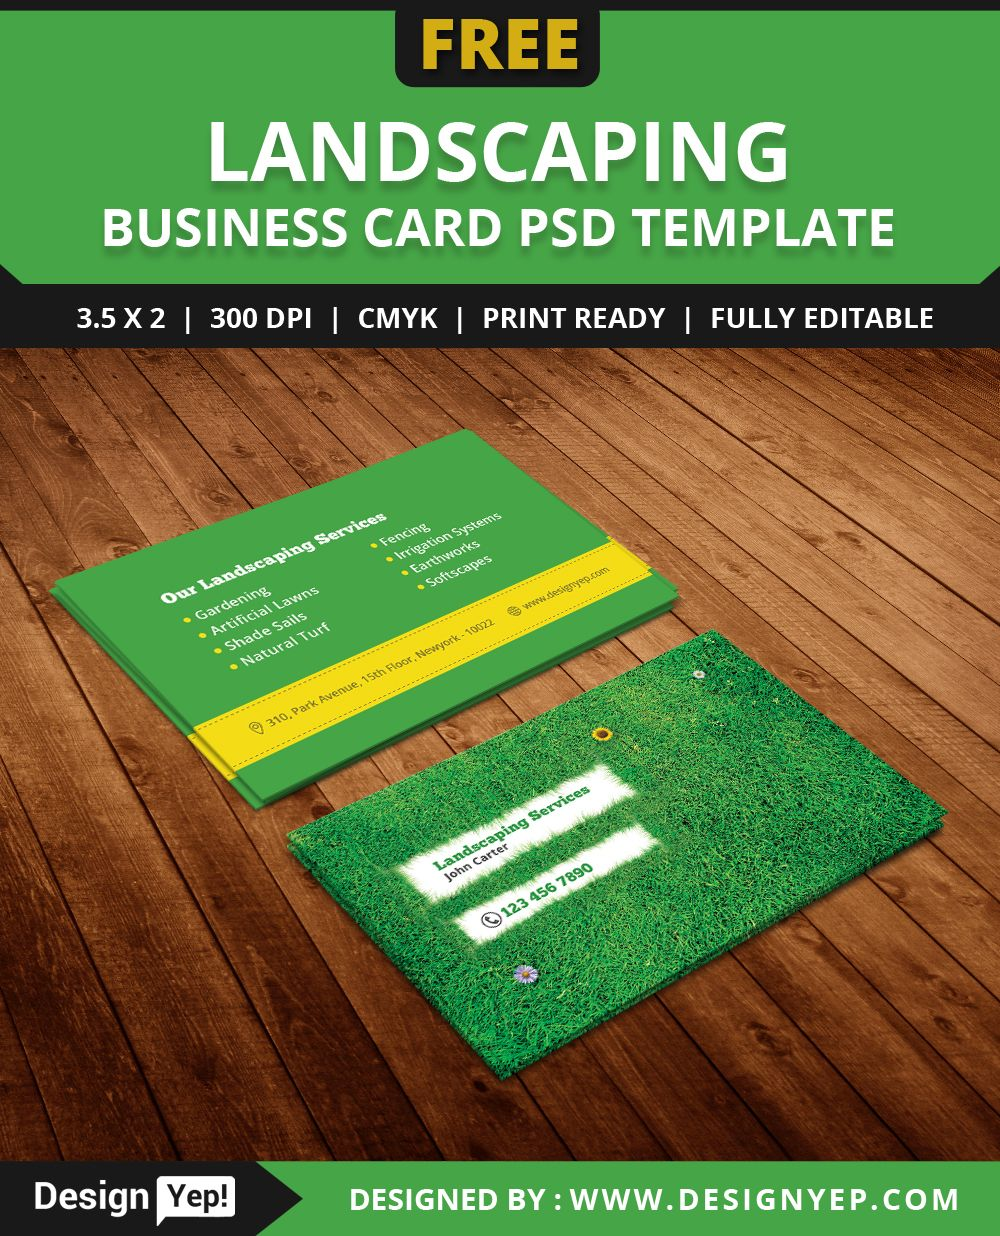 Free landscaping business card template psd free business card free landscaping business card template psd accmission Choice Image